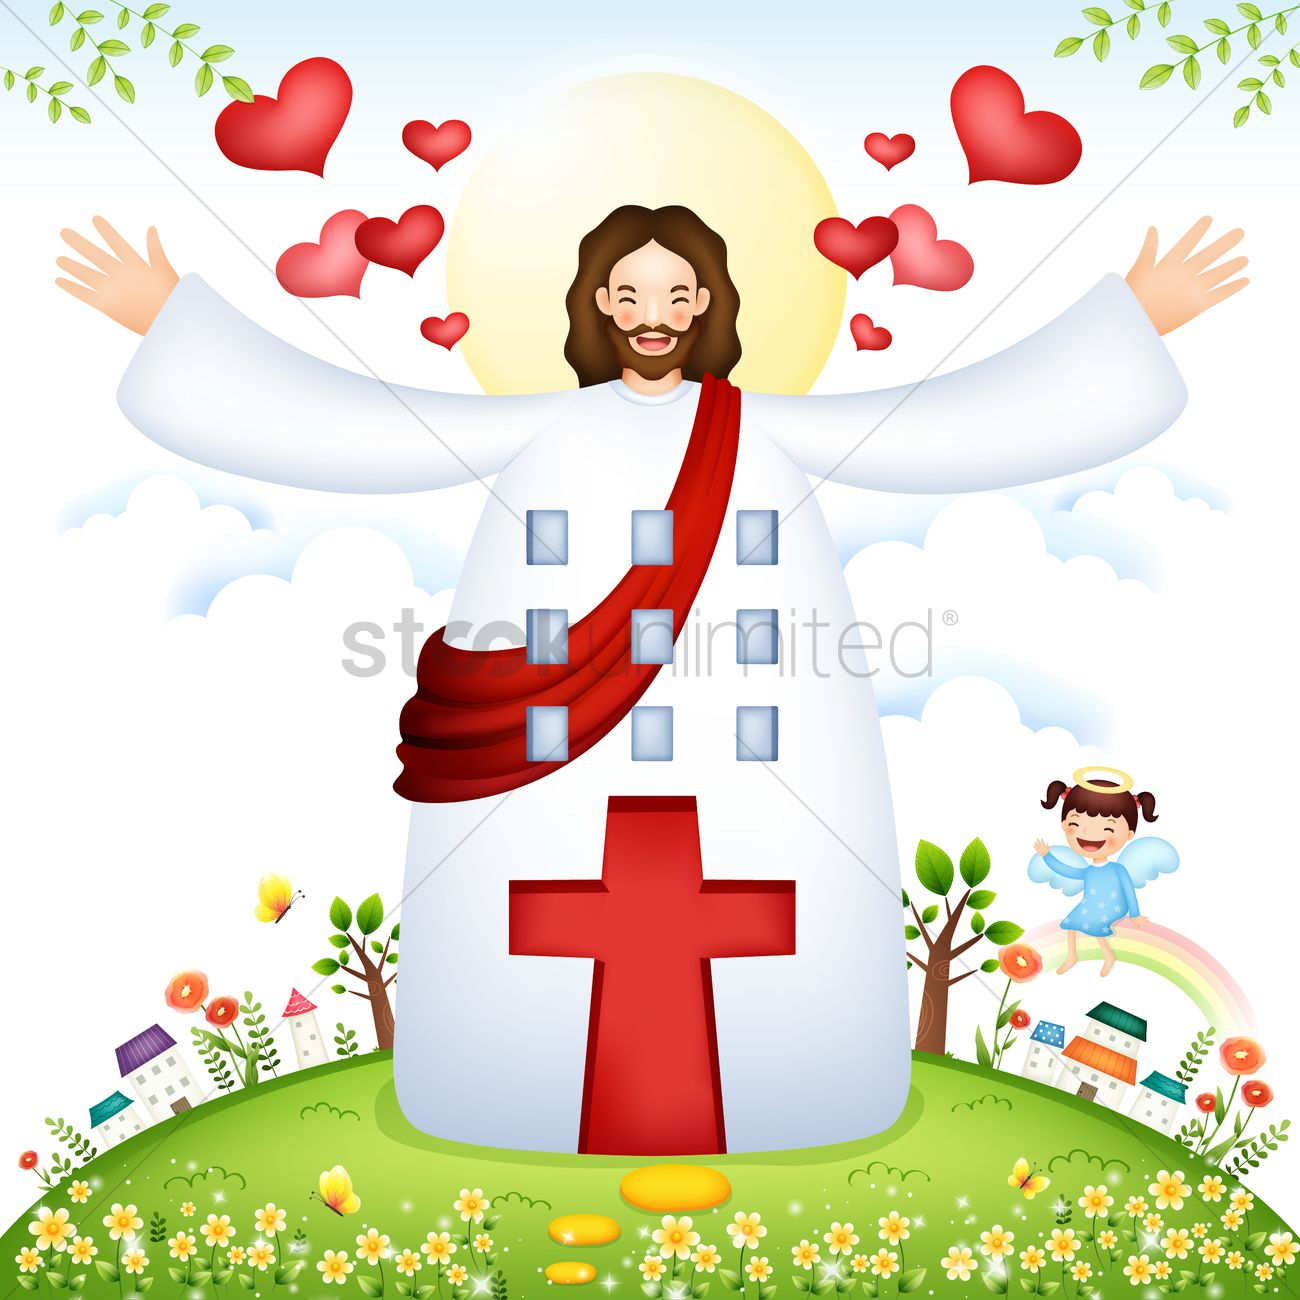 Arms open clipart vector Jesus With Arms Wide Open Vector Image - 1 #116969 - Clipartimage.com vector